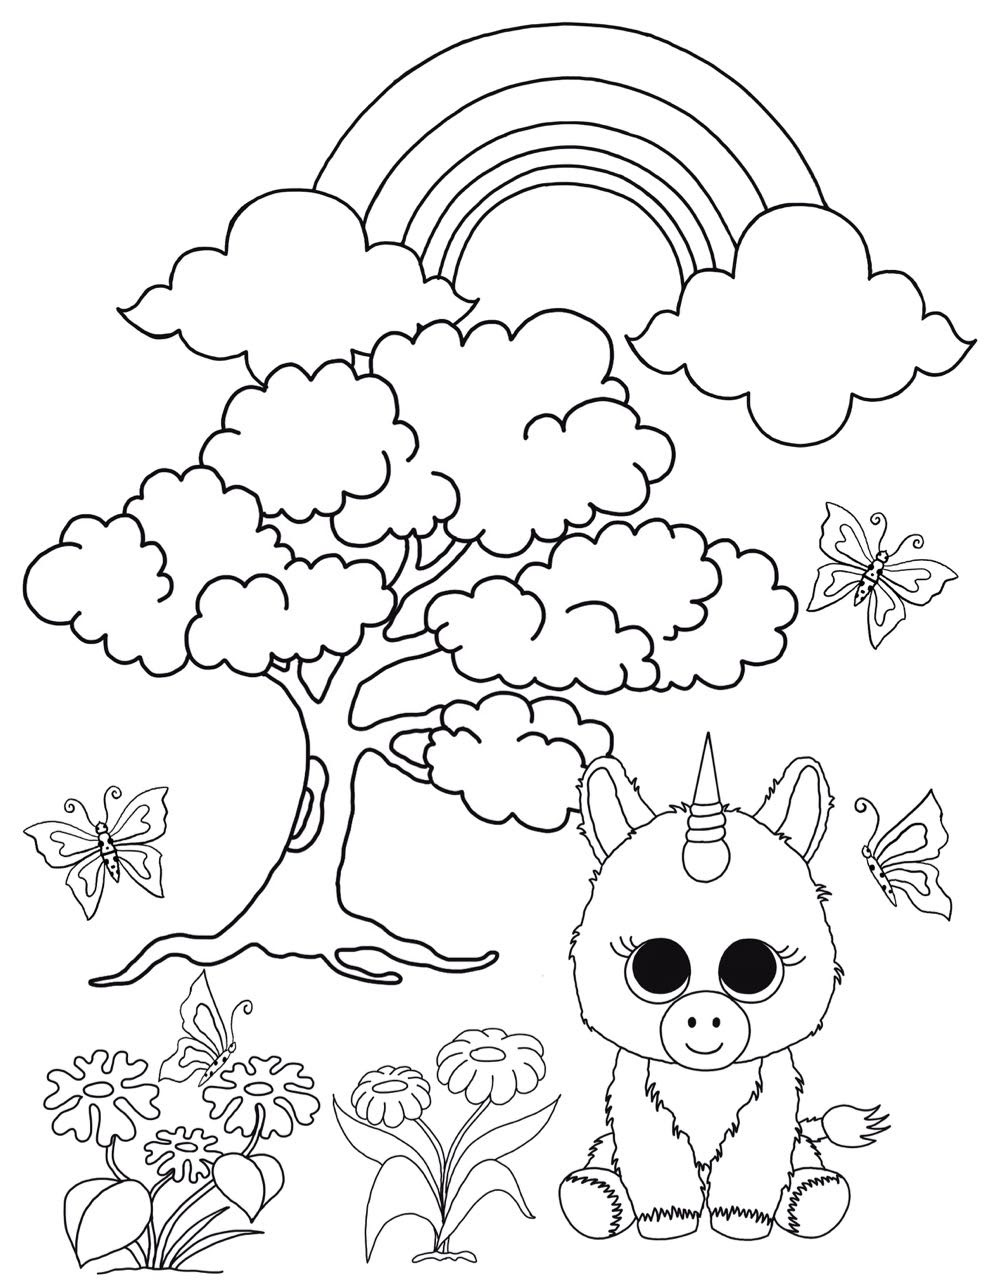 66 Unicorn Cat Coloring Pages For Free